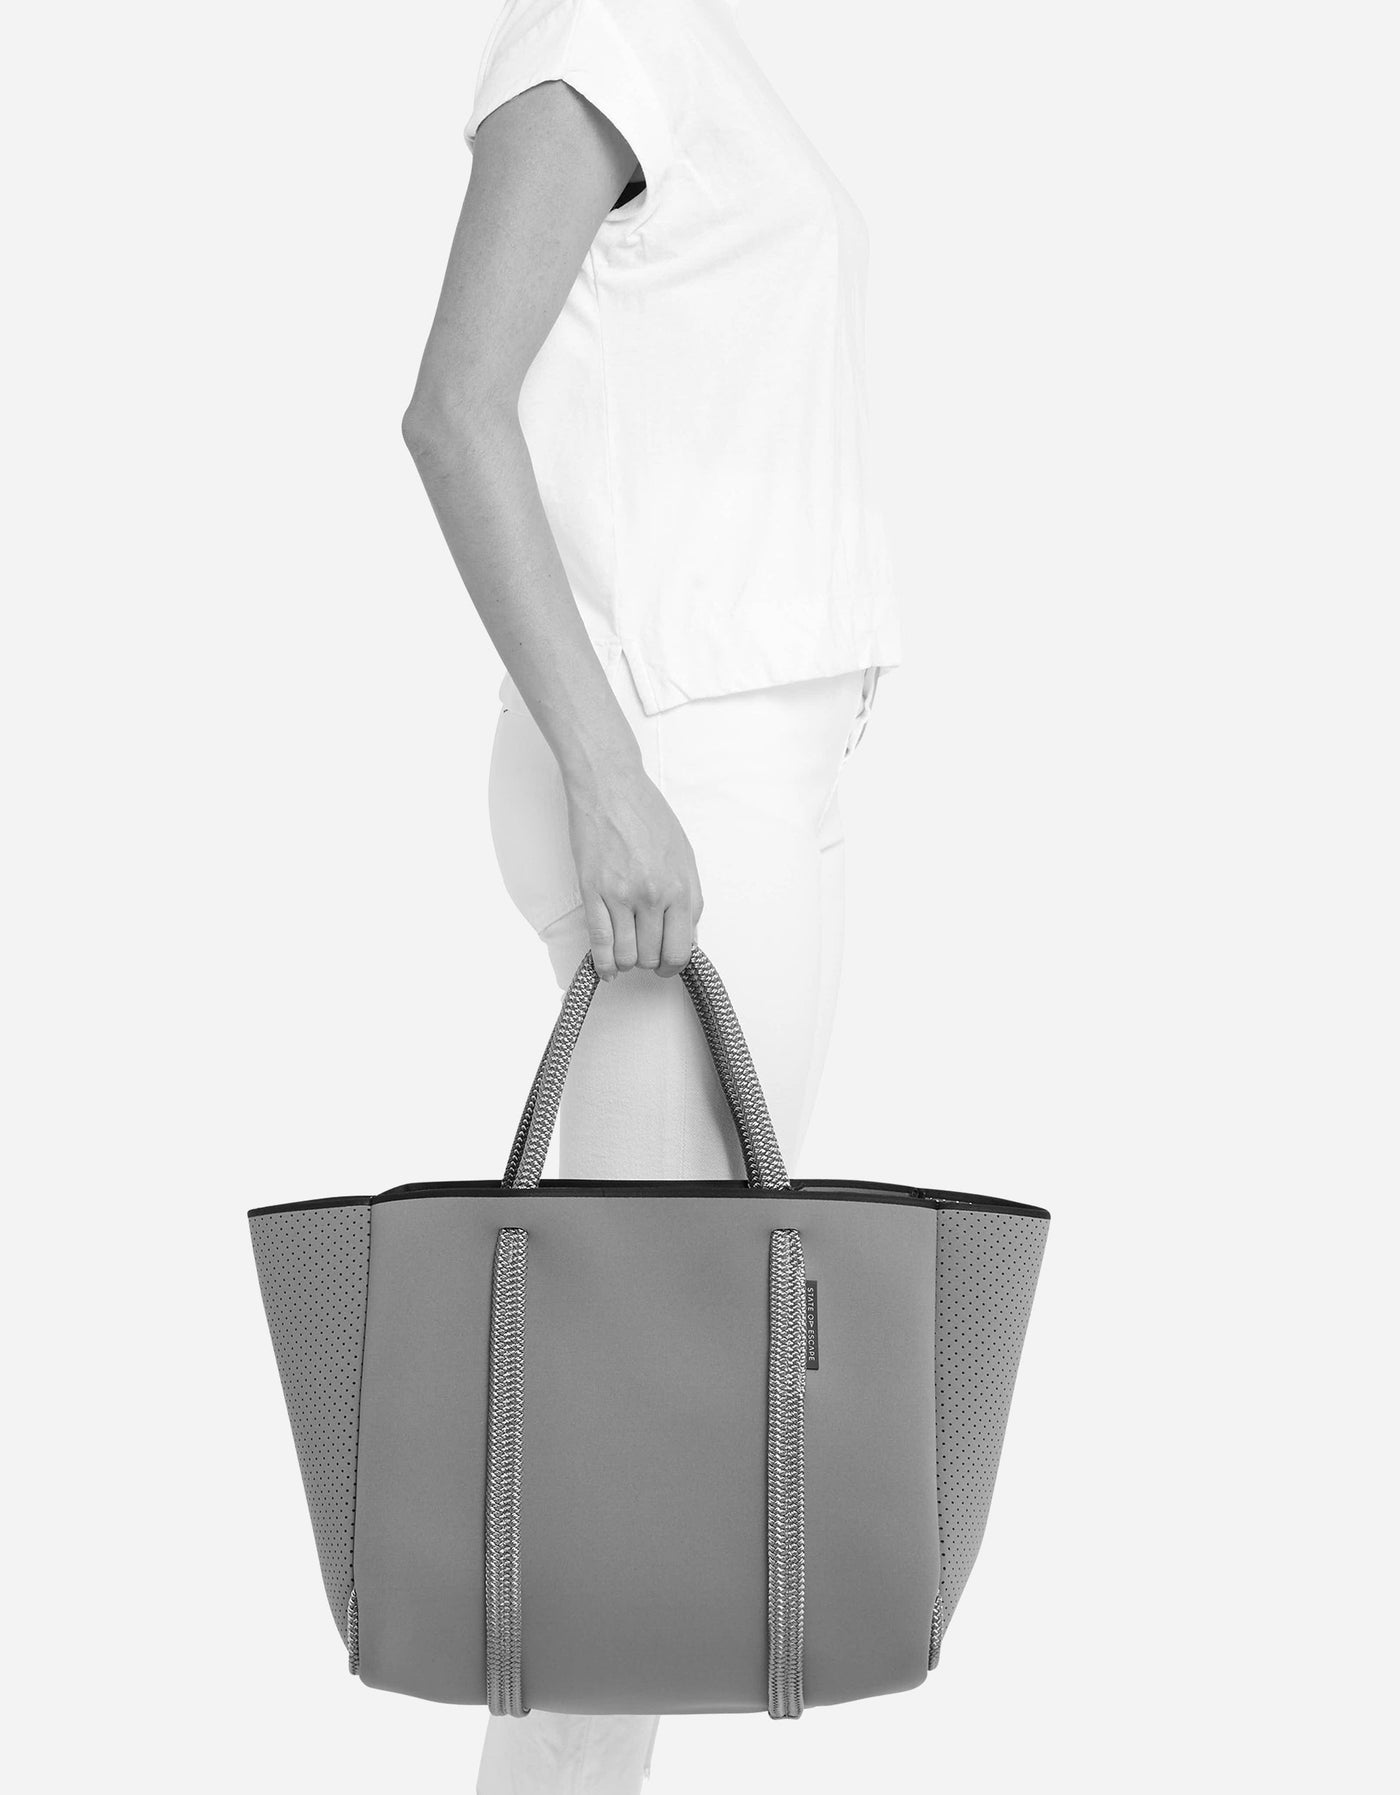 City East West tote in black